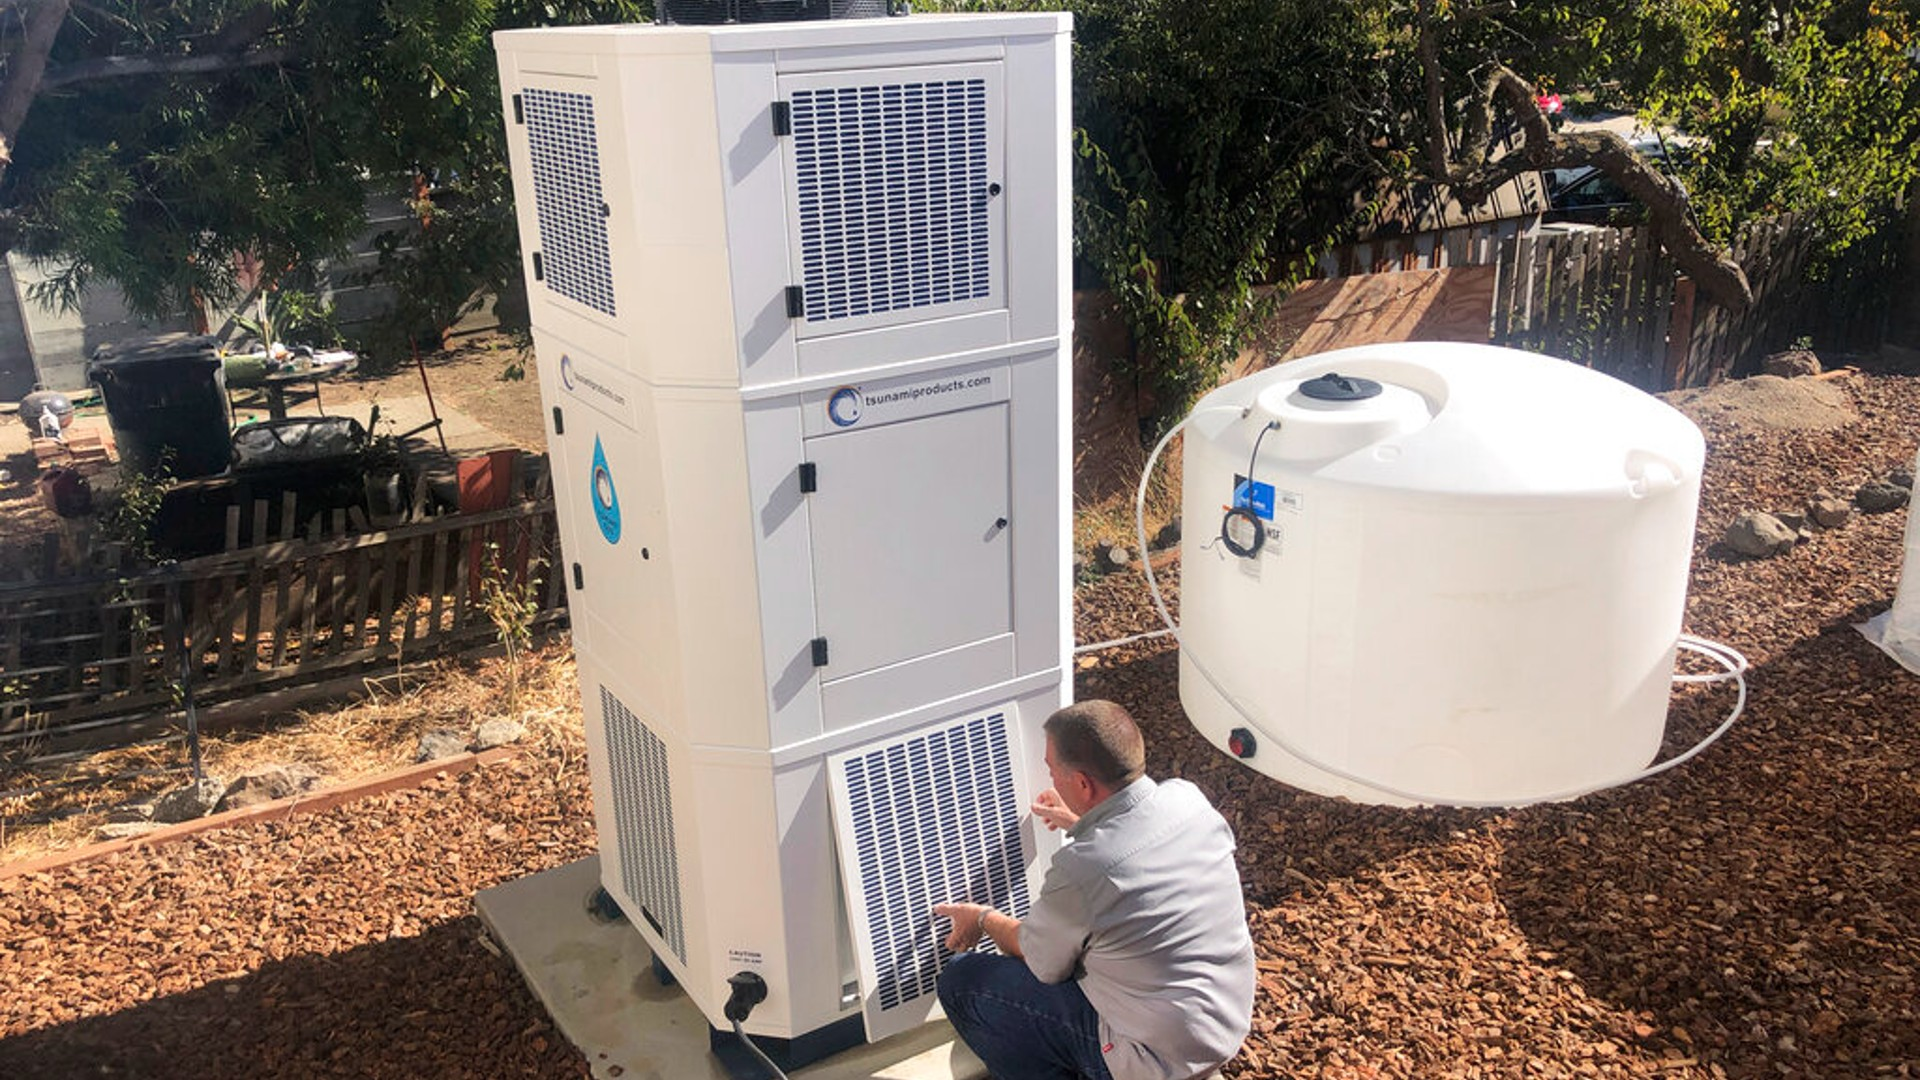 Ted Bowman, design engineer with Tsunami Products, installs a unit in homeowner Don Johnson's backyard in Benicia, Calif., Sept. 28, 2021. (AP Photo/Haven Daily)